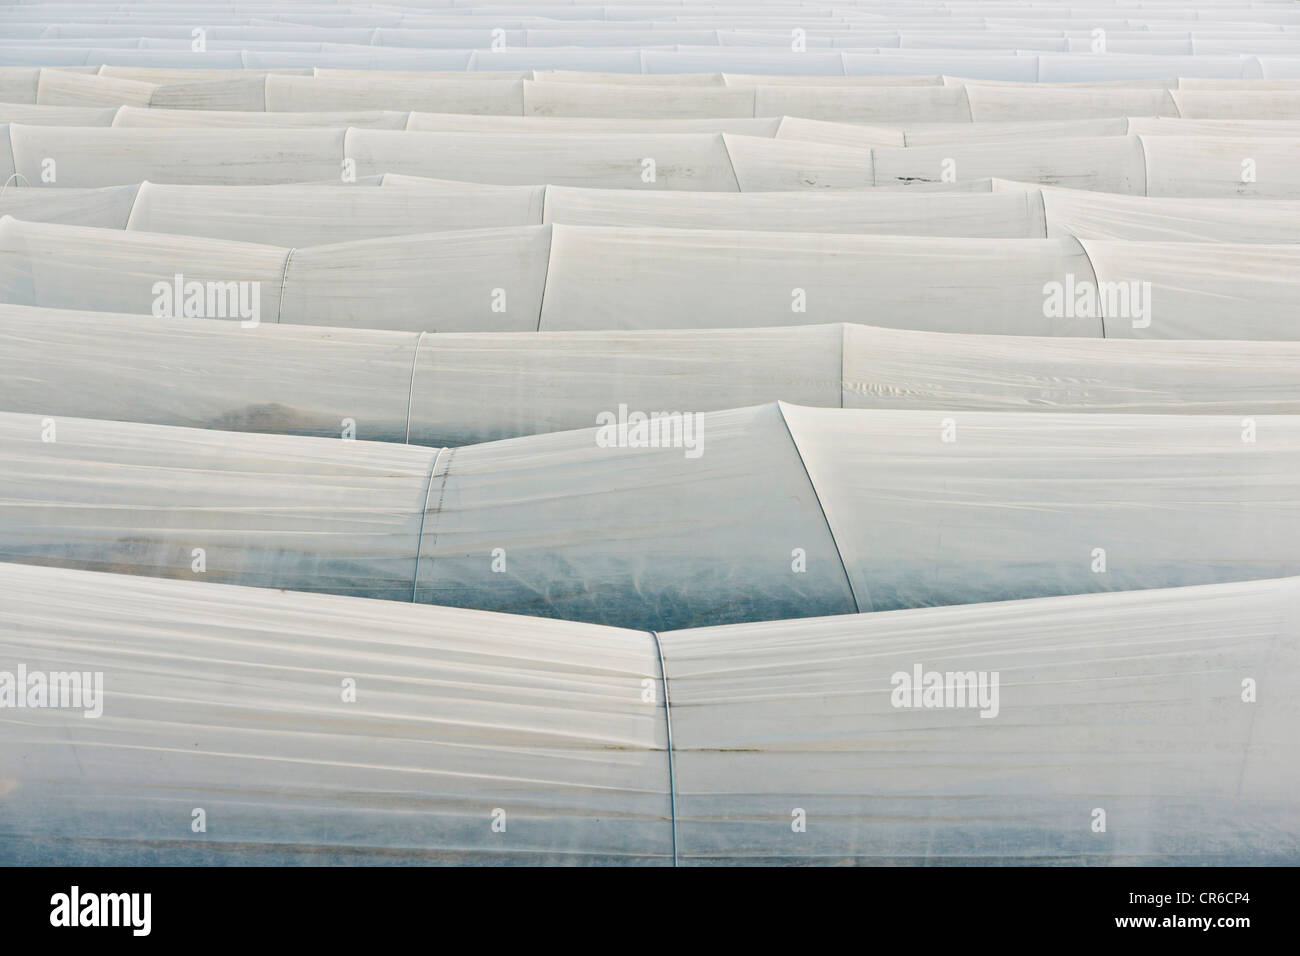 Germany, View of aspargus cultivation in late march - Stock Image